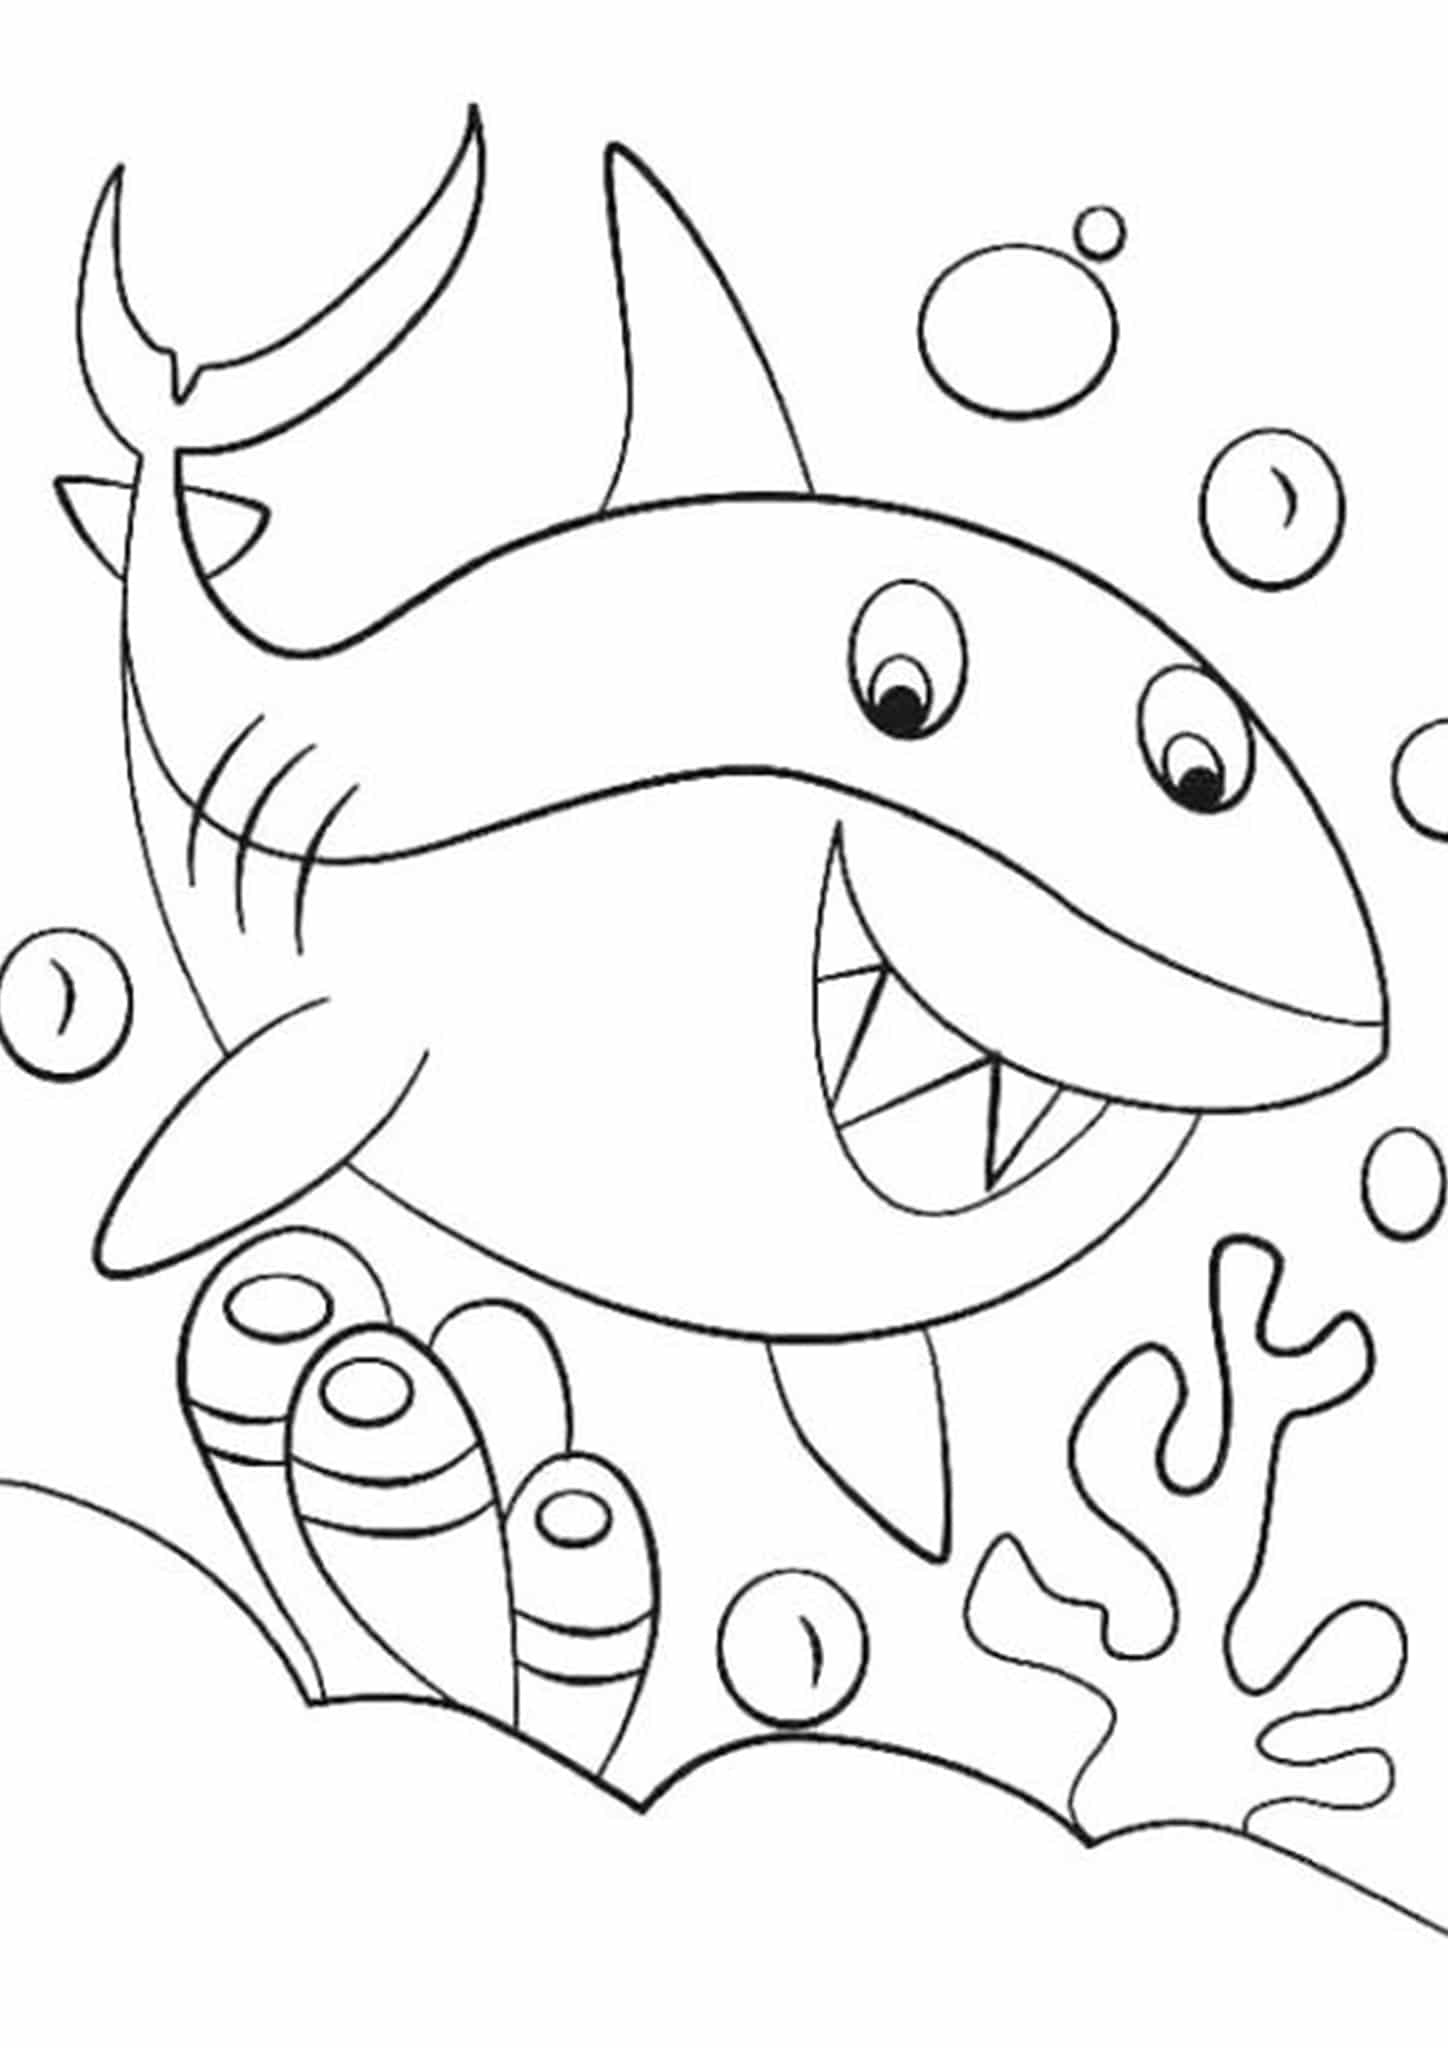 coloring page shark big angry sharks coloring pages for kids etk printable coloring shark page